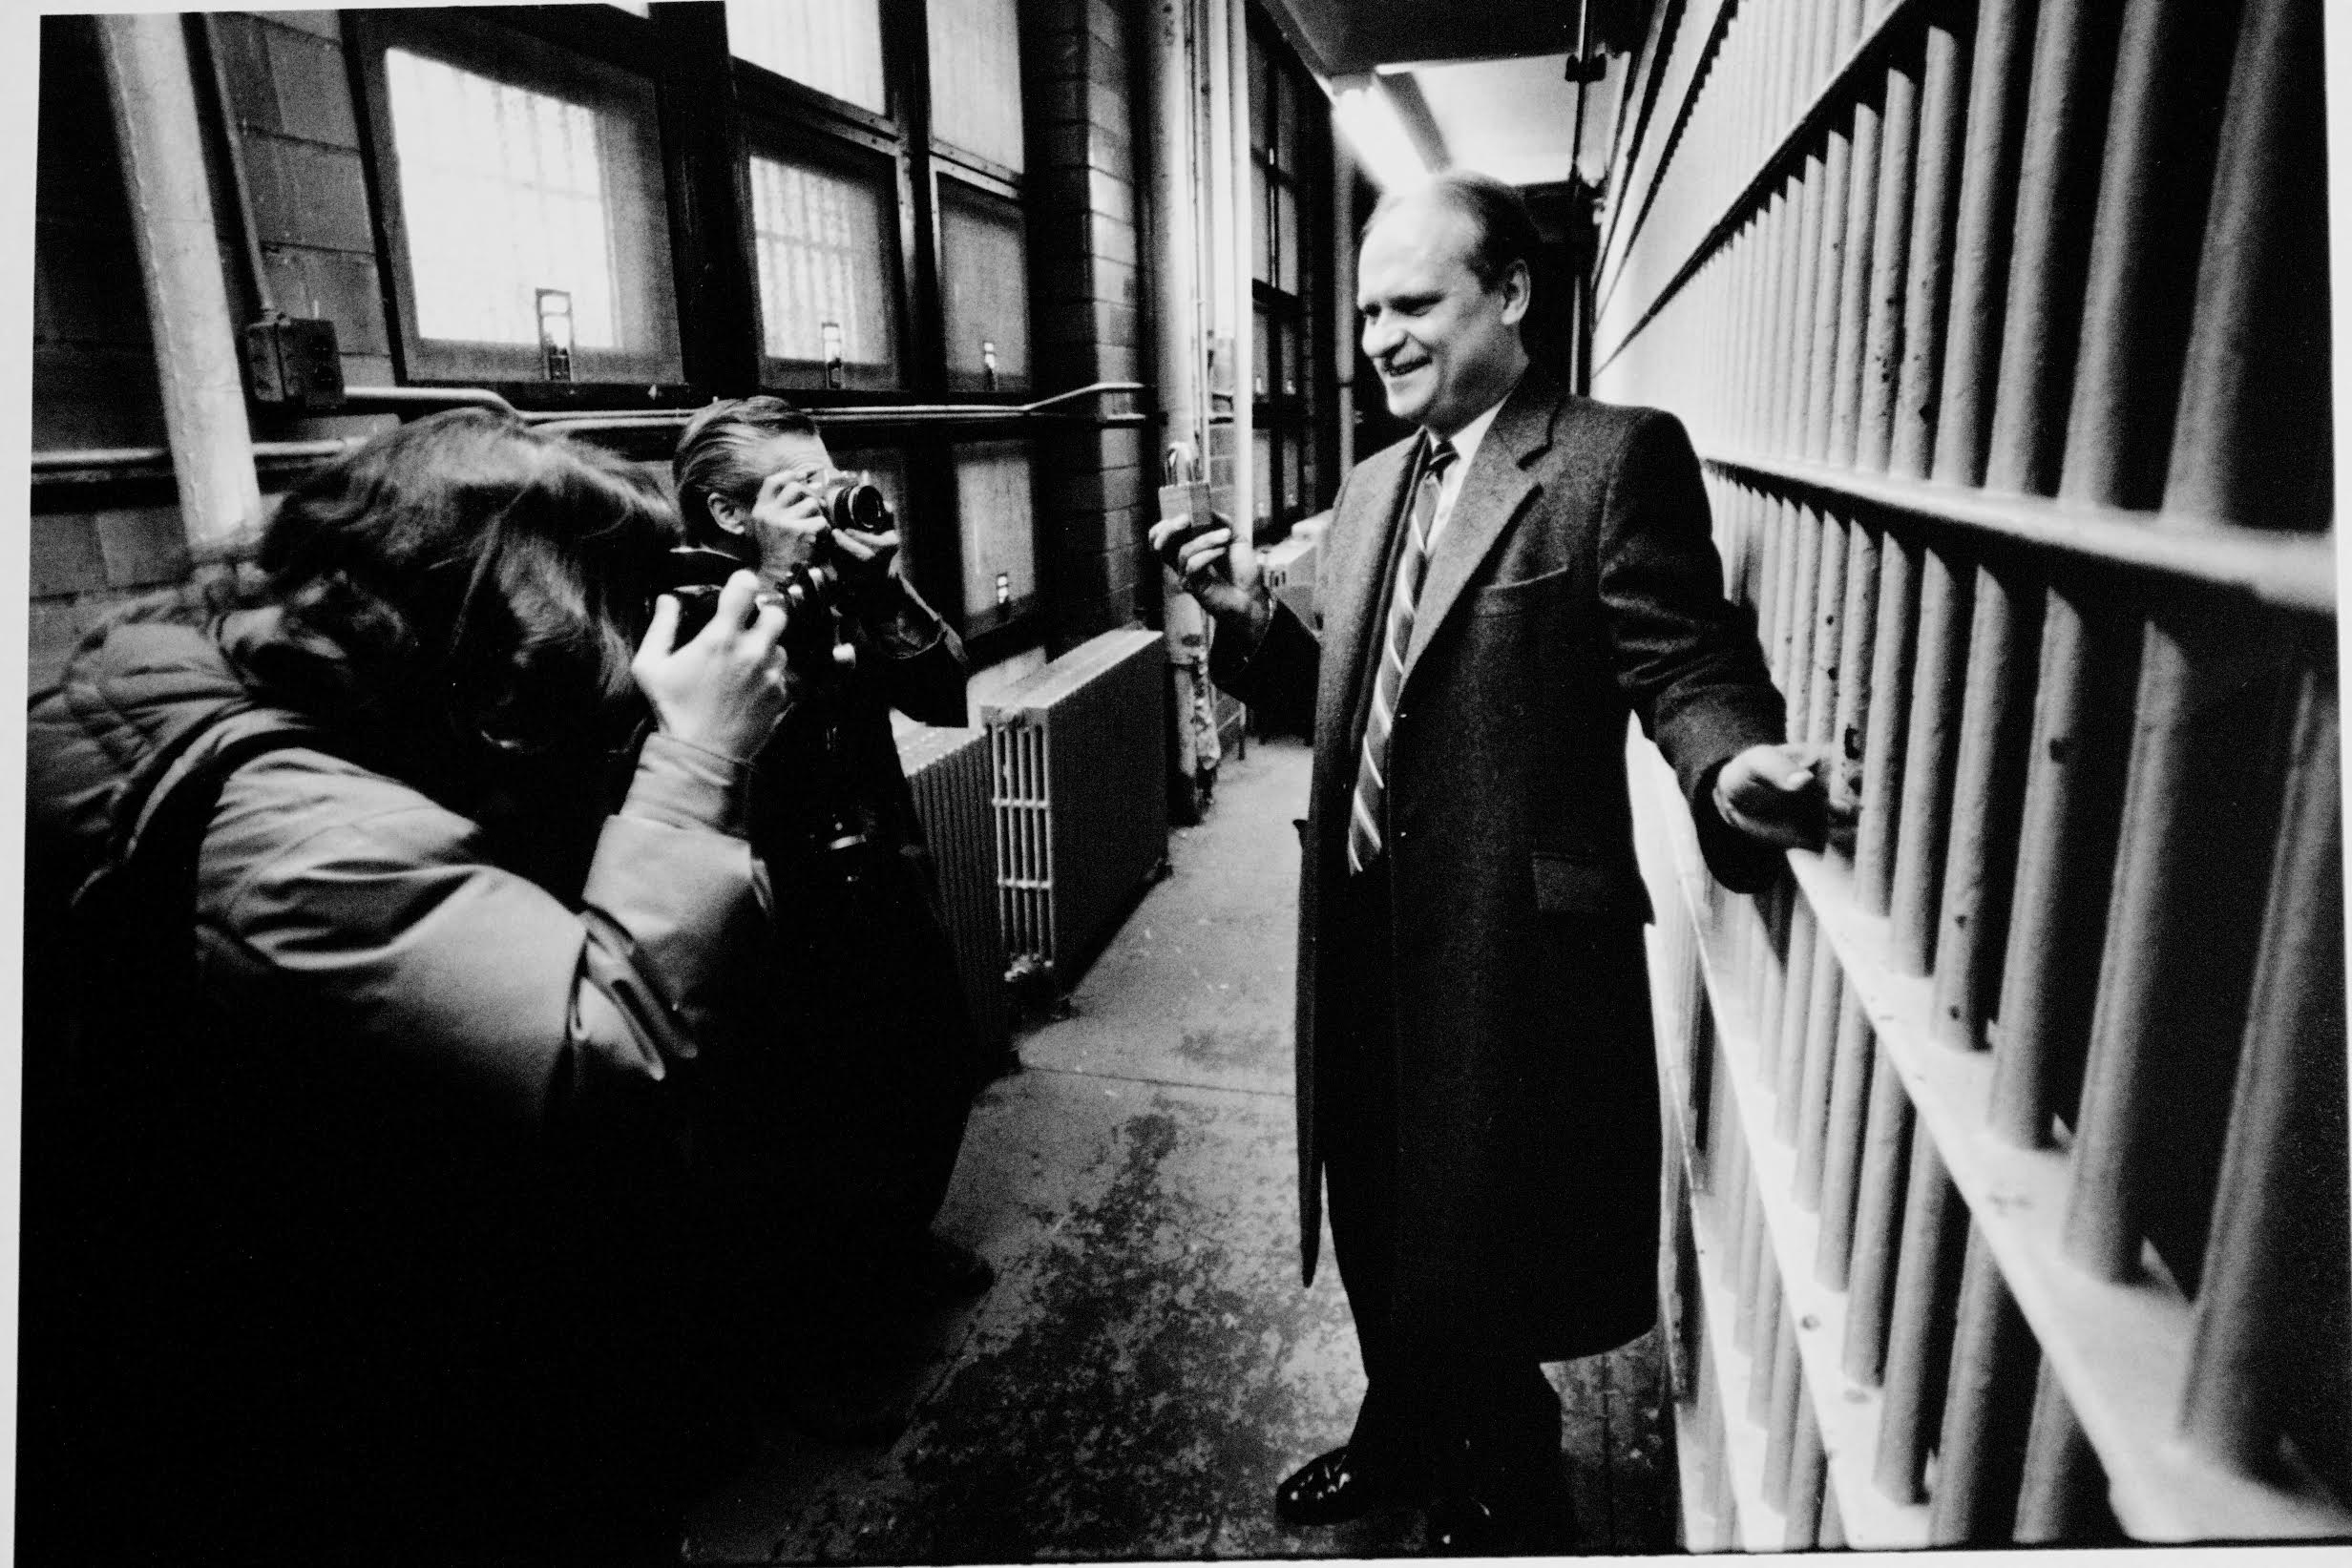 Then County Executive, Robert Janiszewski, poses for the press at the Old Hudson County Jail. He was later indicted and convicted on corruption charges and spent time behind those bars. Photograph by Bill Bayer.